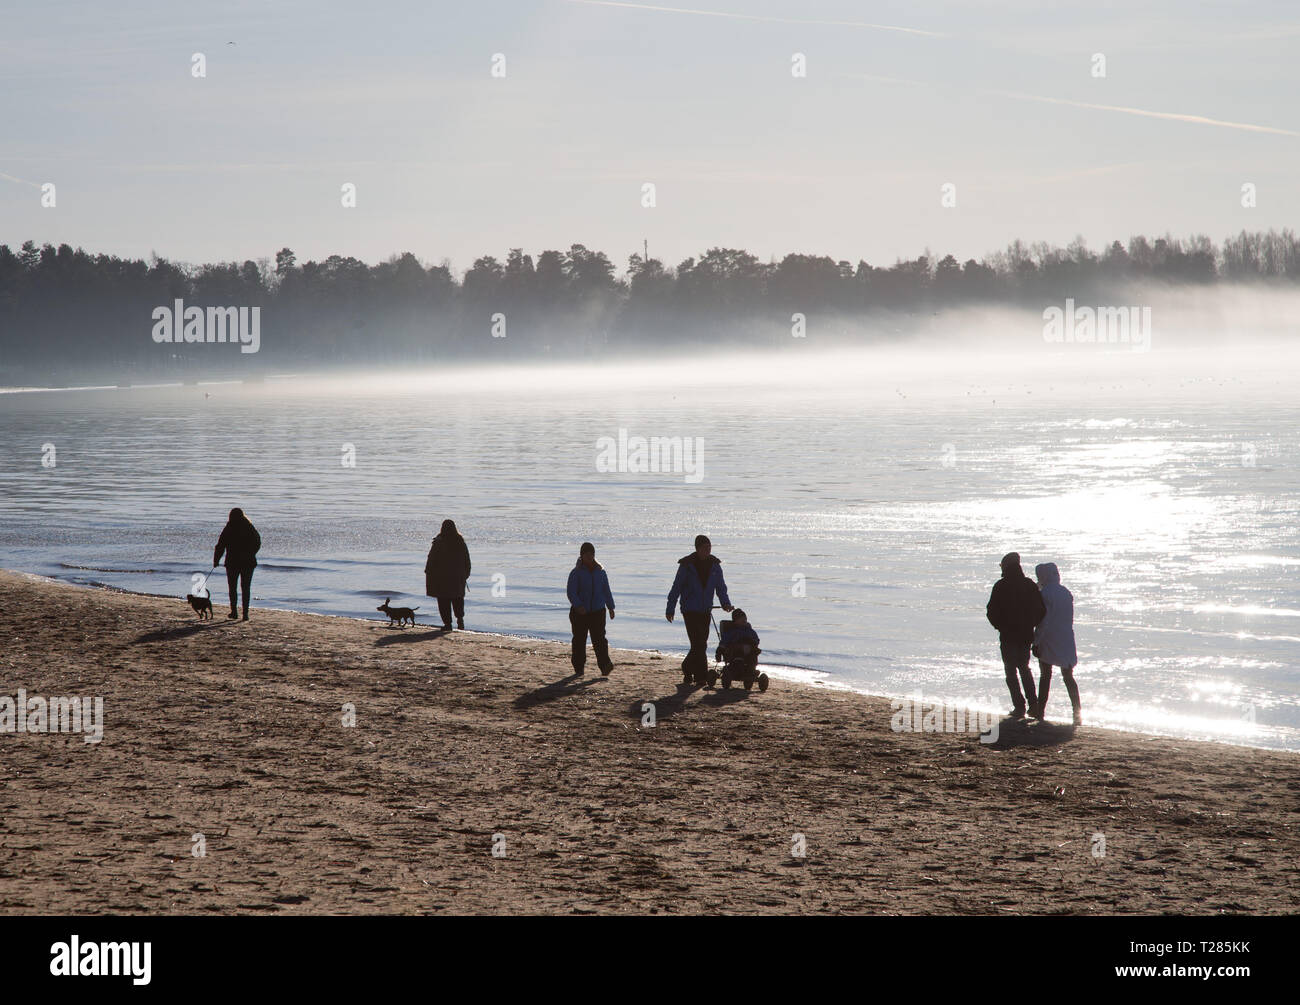 People on Sunday walk. - Stock Image